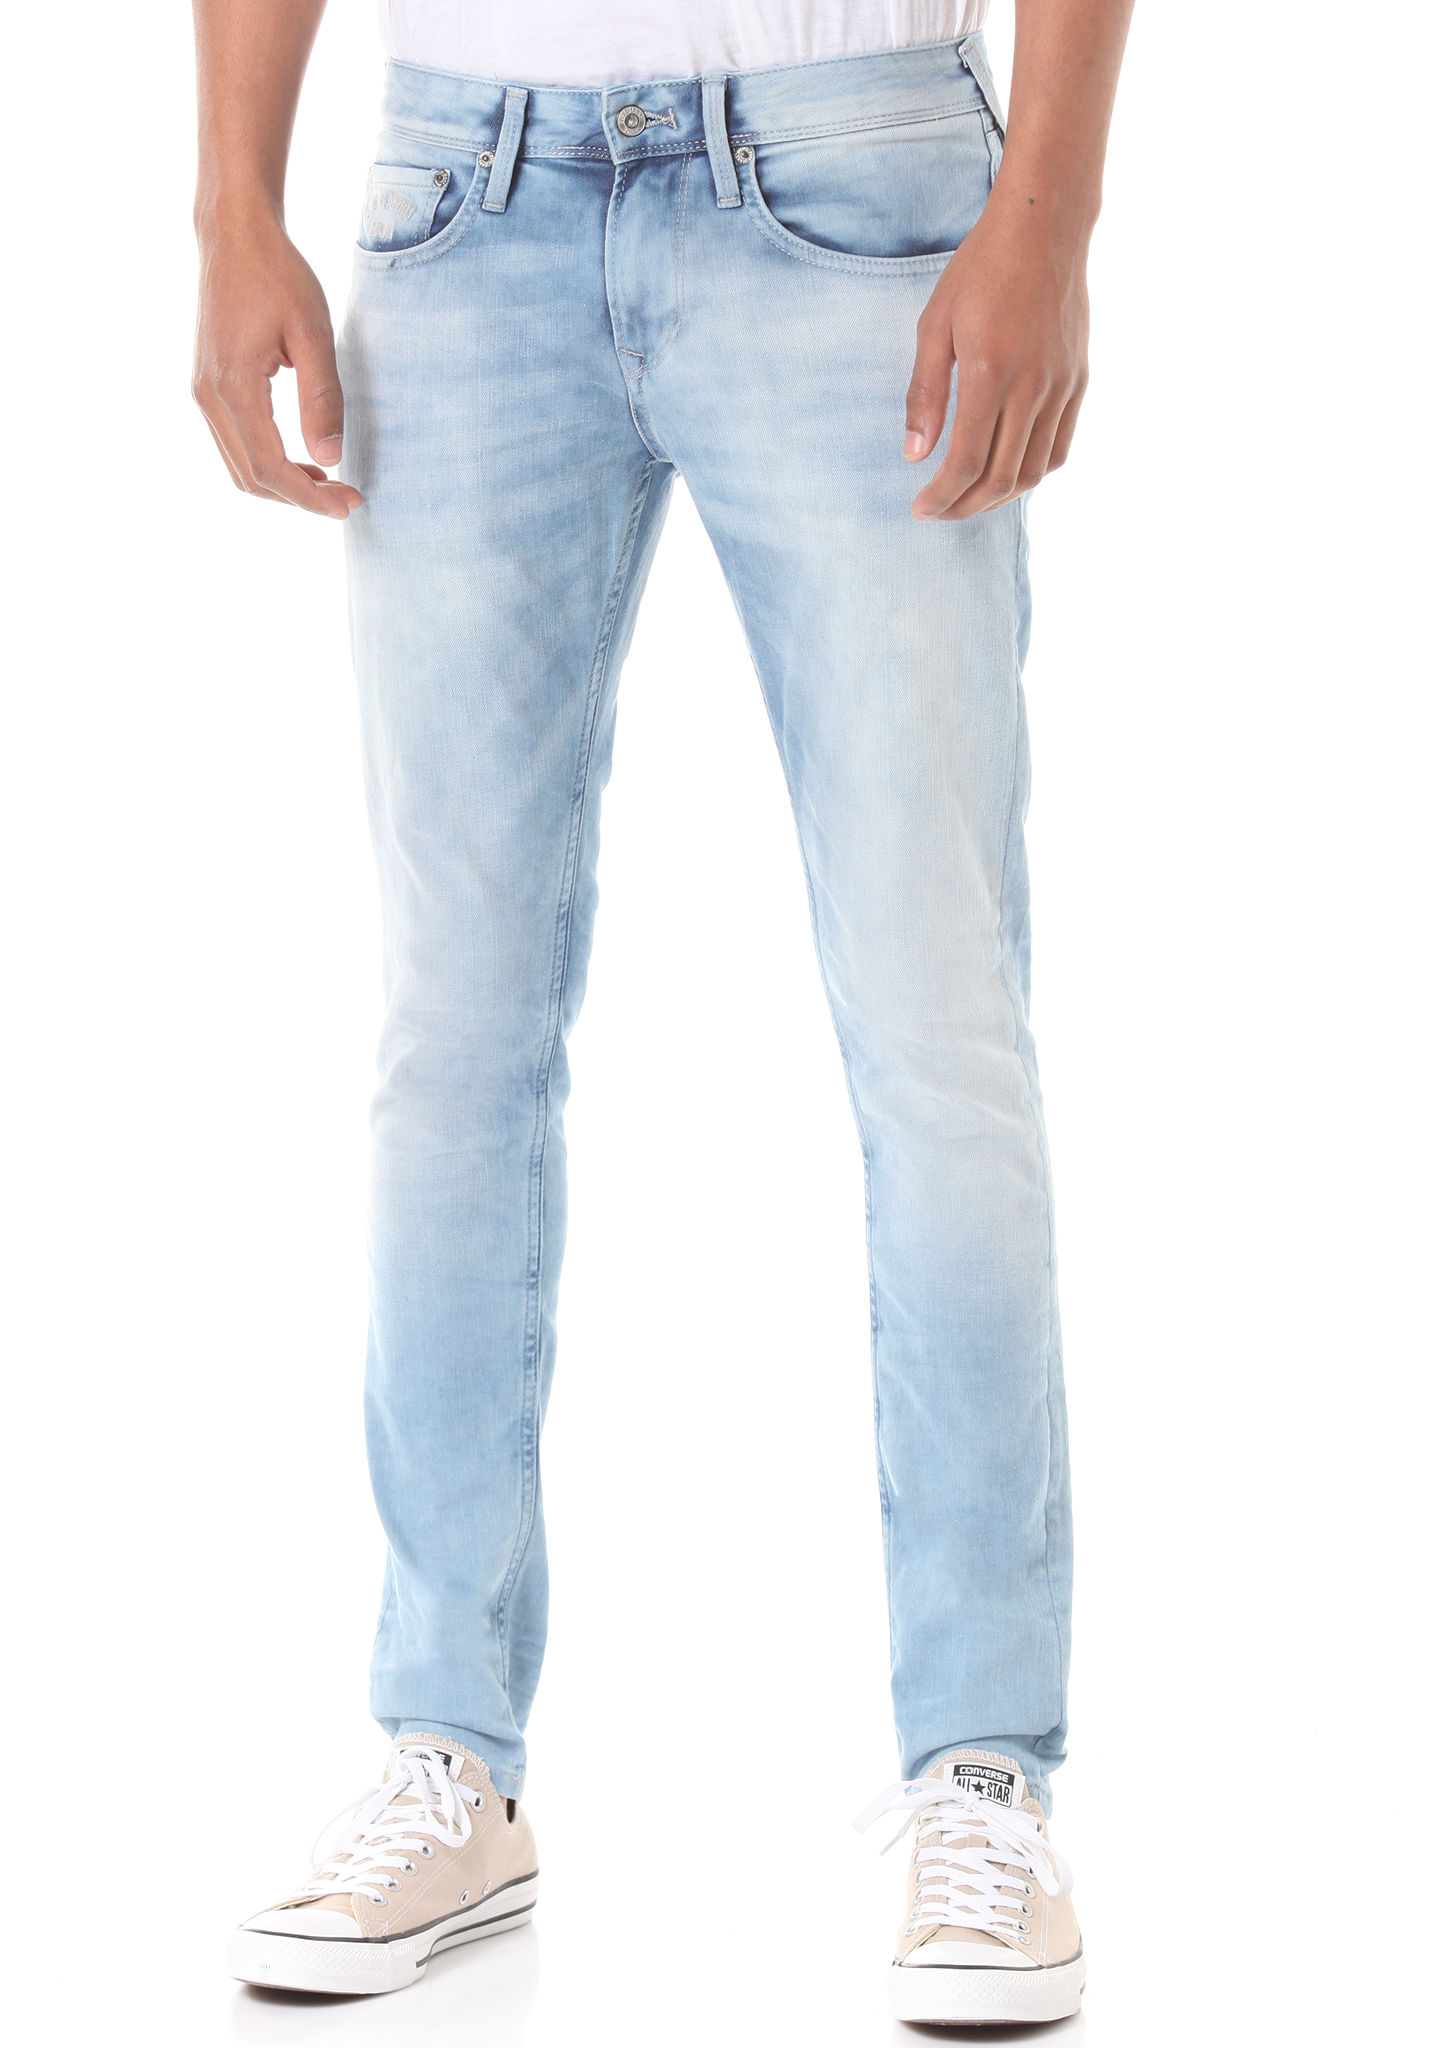 Homme pepe Finsbury Finsbury Homme Jeans Pepe pepe 1Juc3lTFK